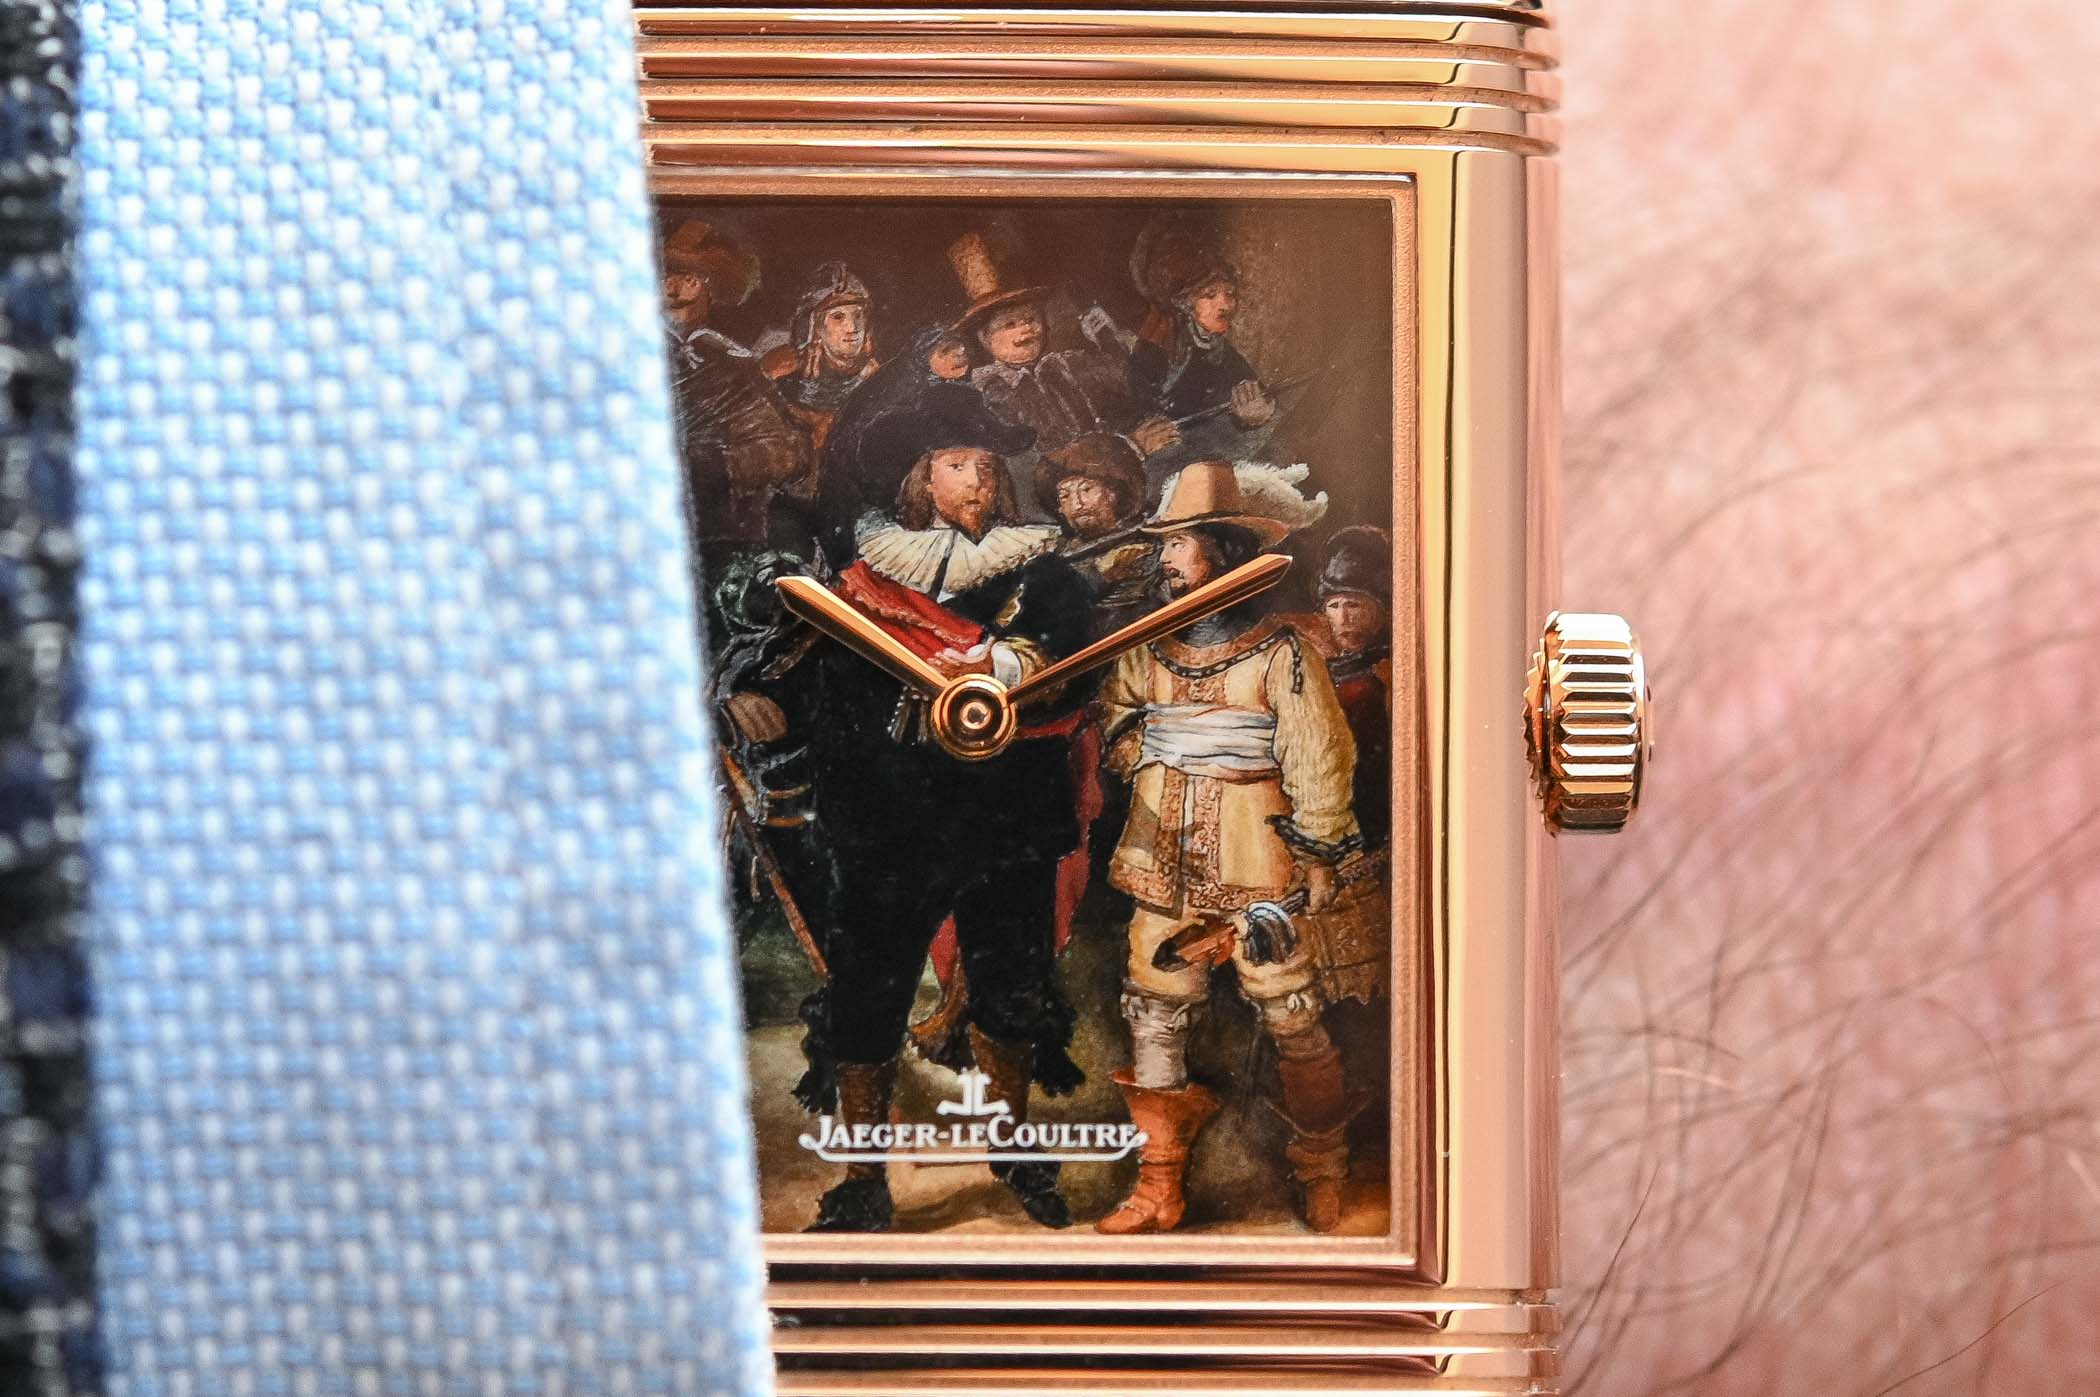 Jaeger-LeCoultre Reverso tribute to Rembrandt - 3